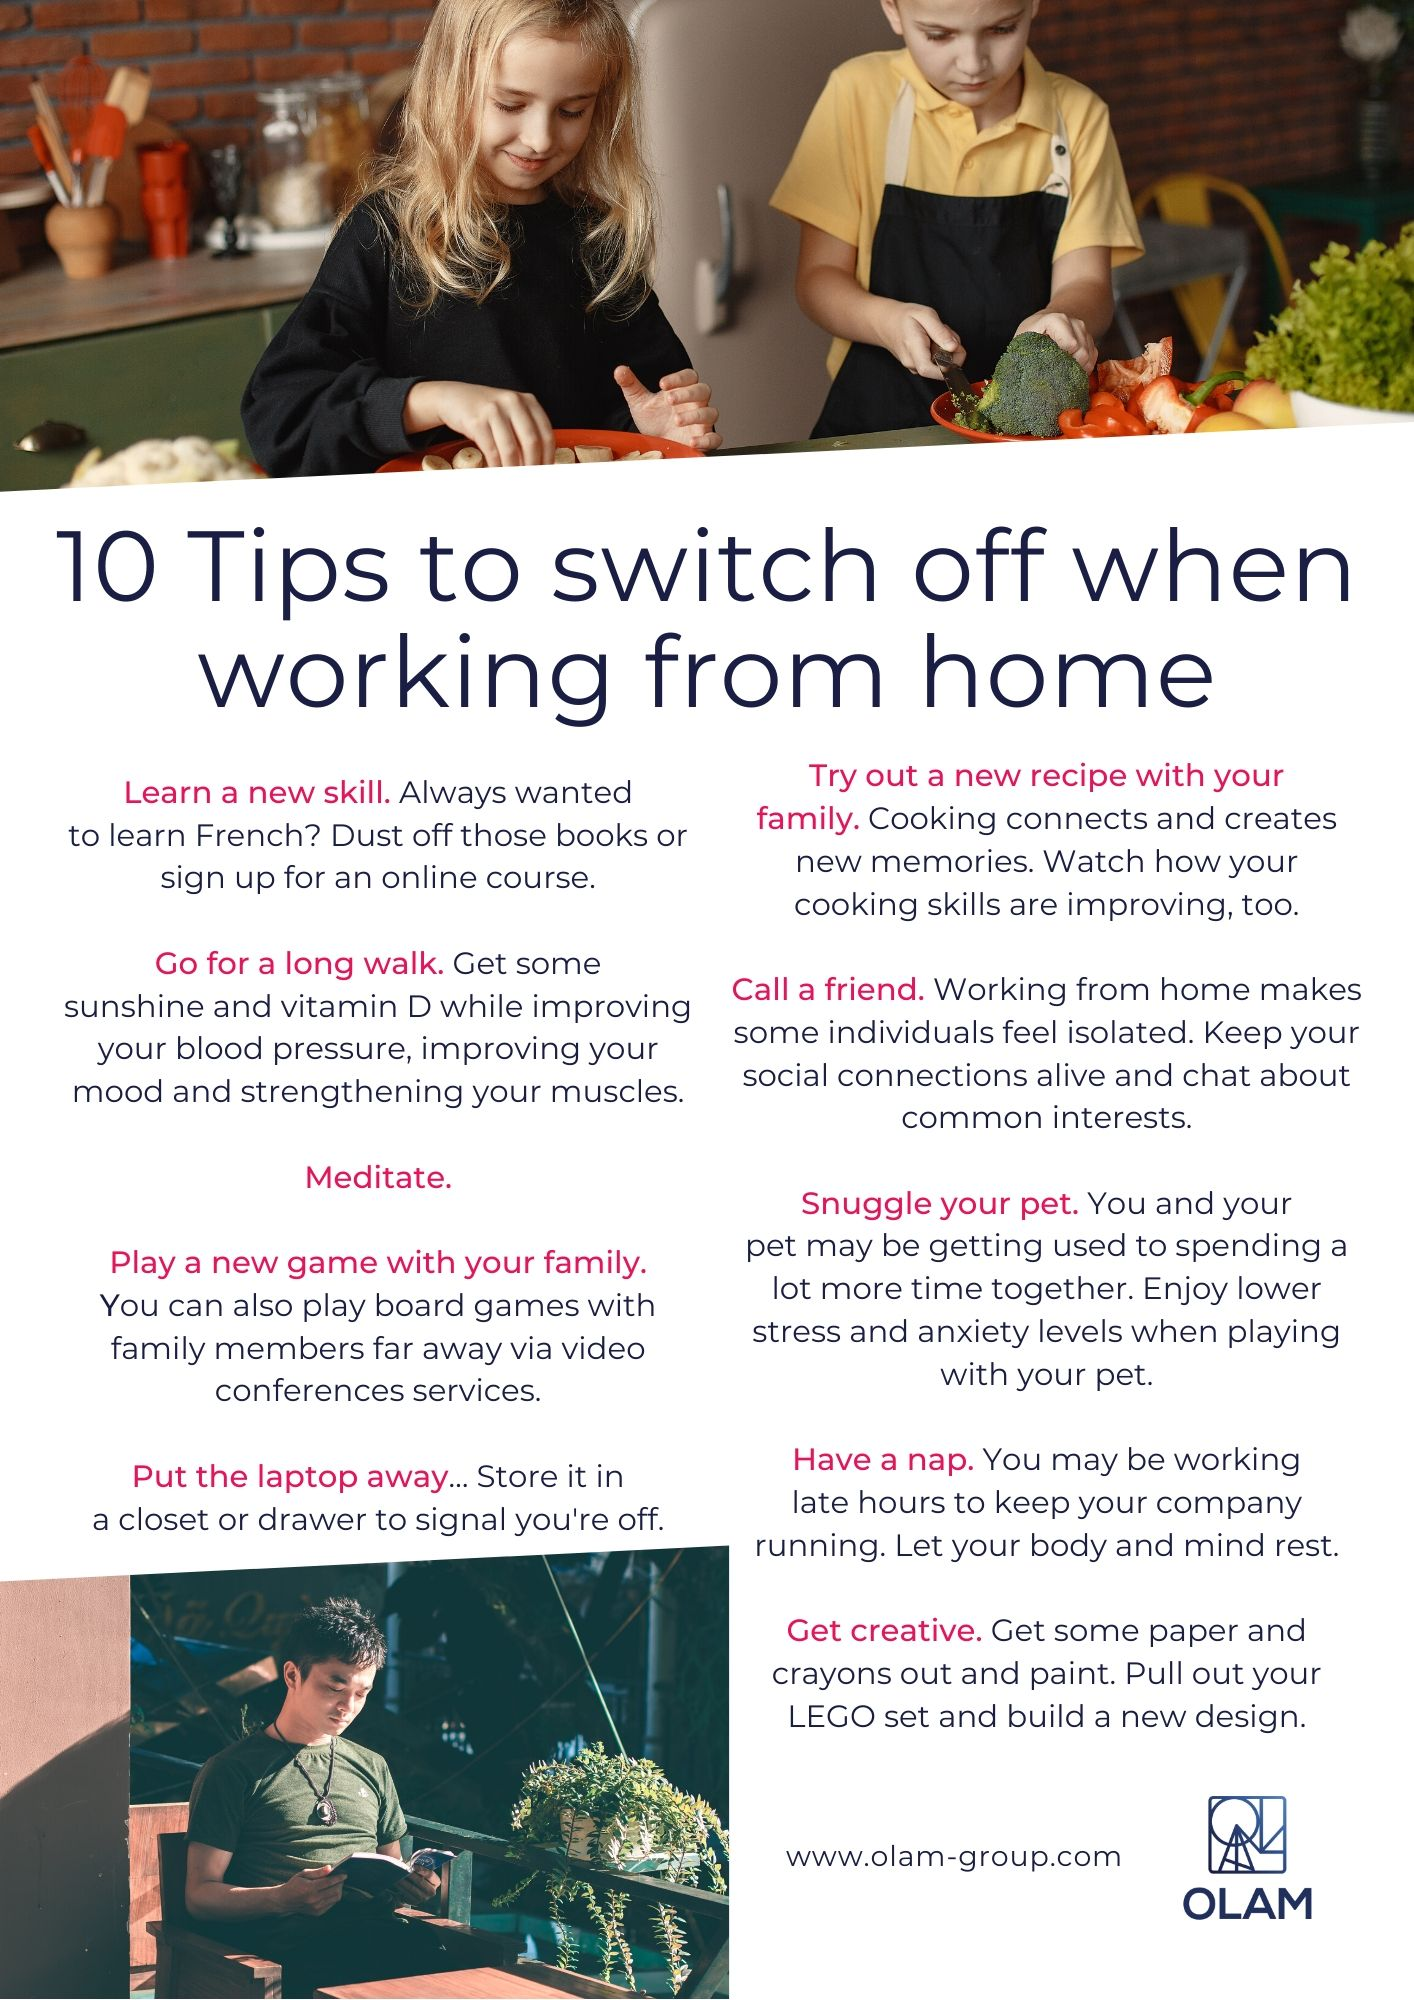 10 Tips to switch off when working from home